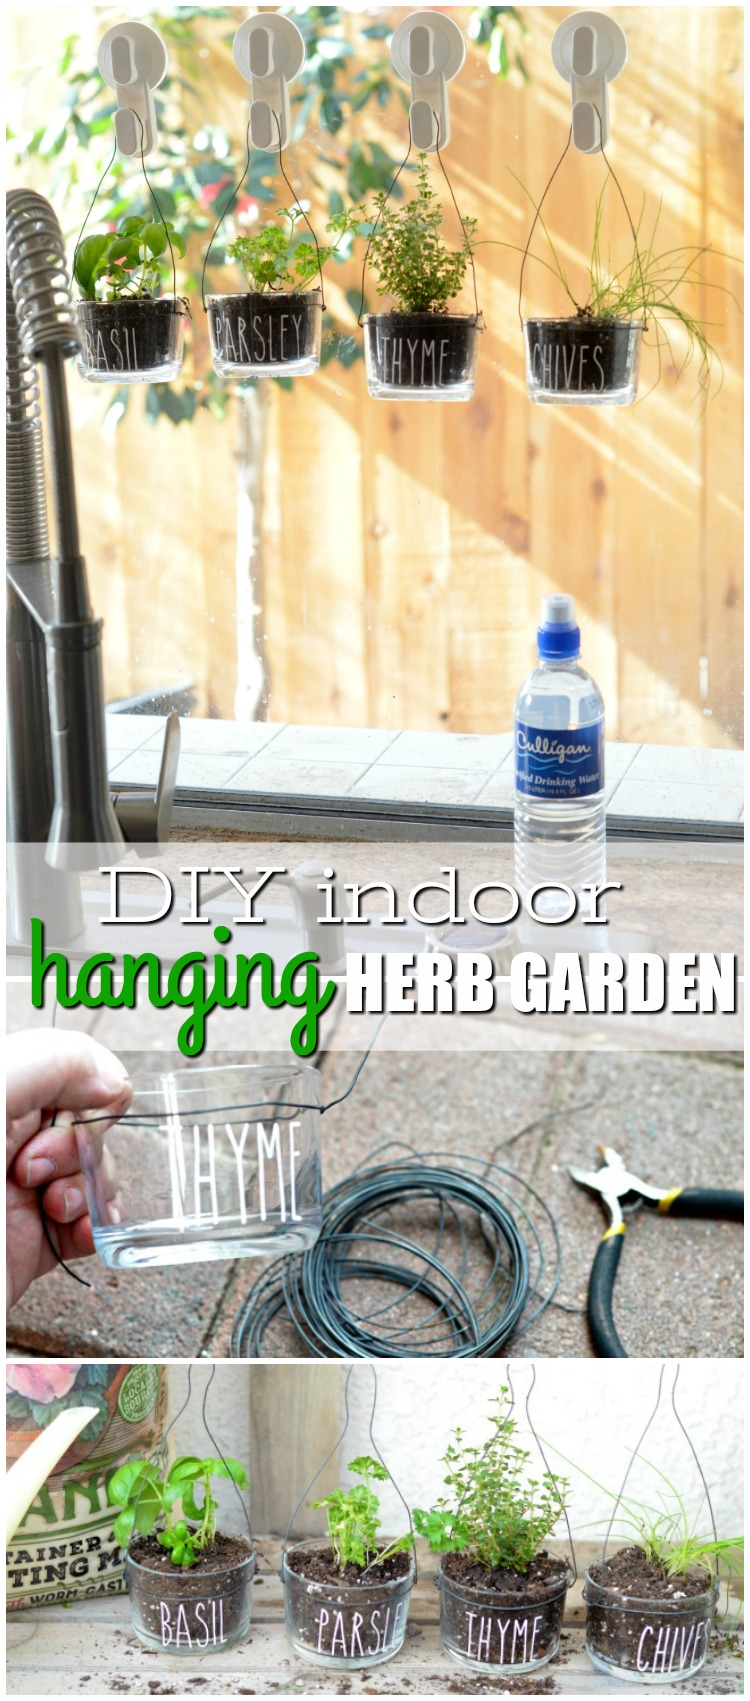 This DIY Indoor Hanging Herb Garden is the perfect way to bring the garden indoors! Plus you'll have fresh herbs for whatever you're whipping up for dinner.